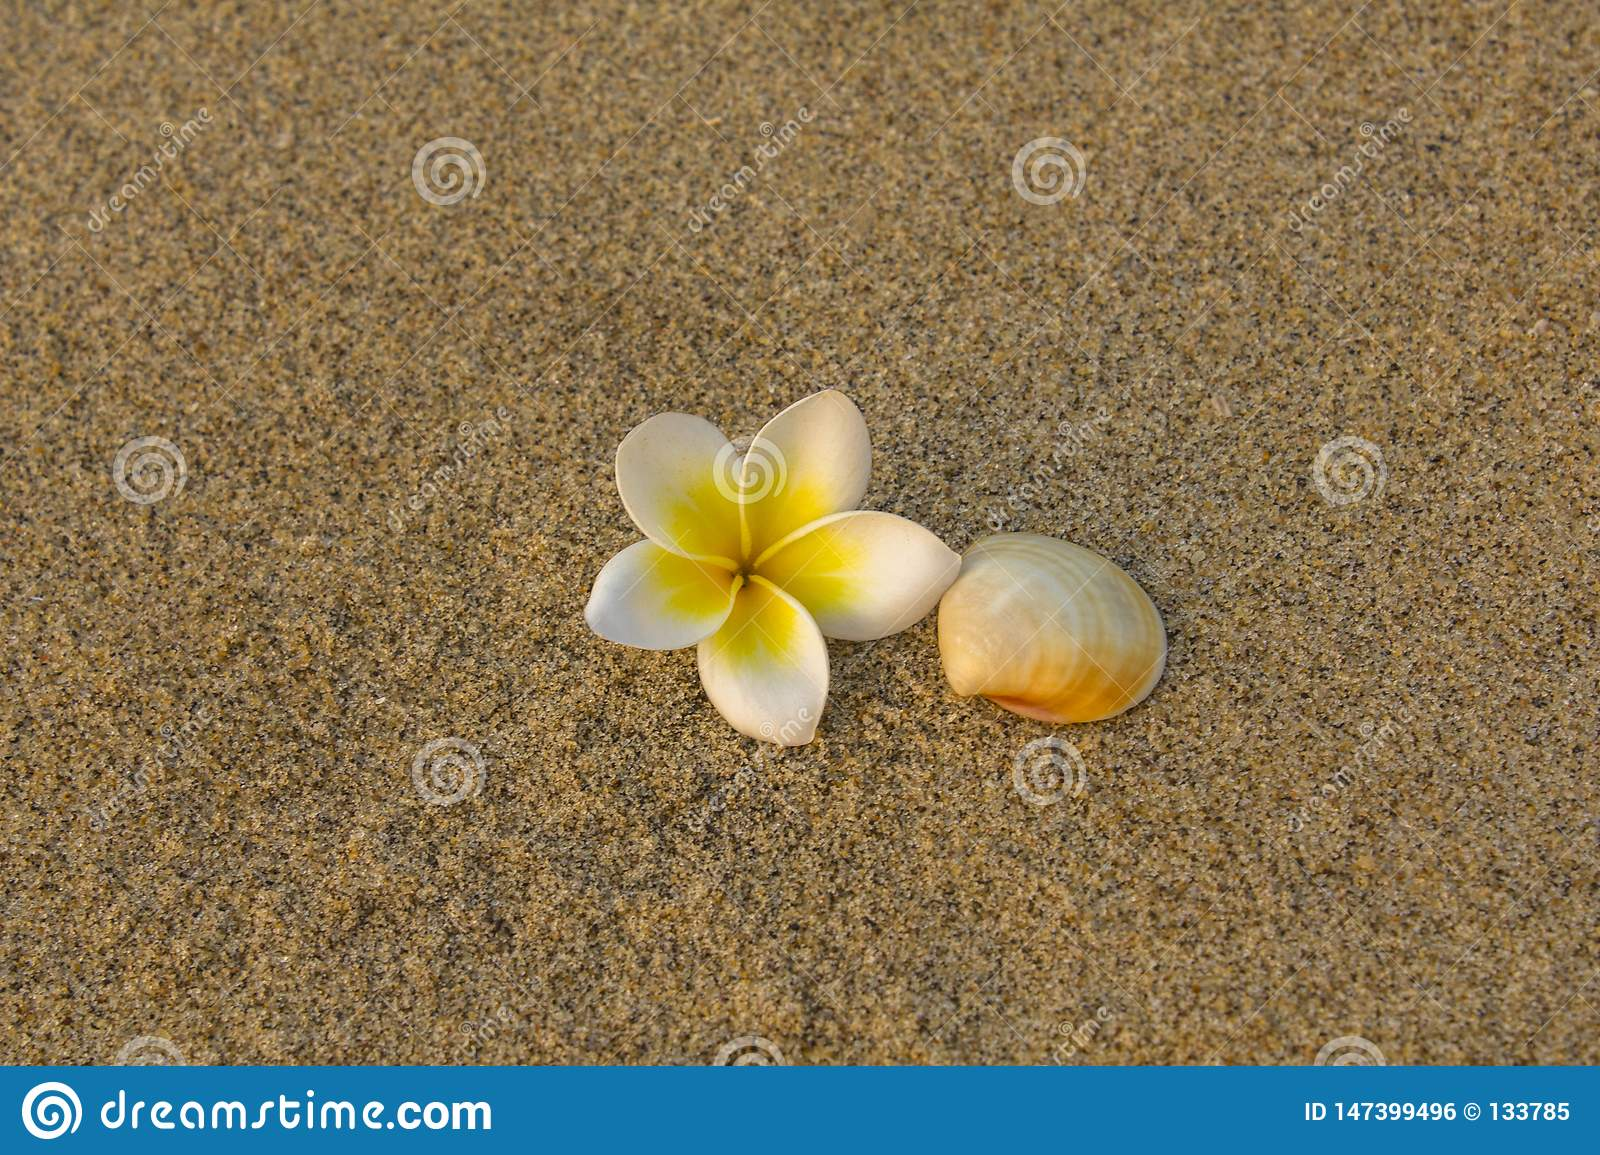 Bright white frangipani plumeria flower and beige shell lie on the blurred yellow sand. natural surface texture